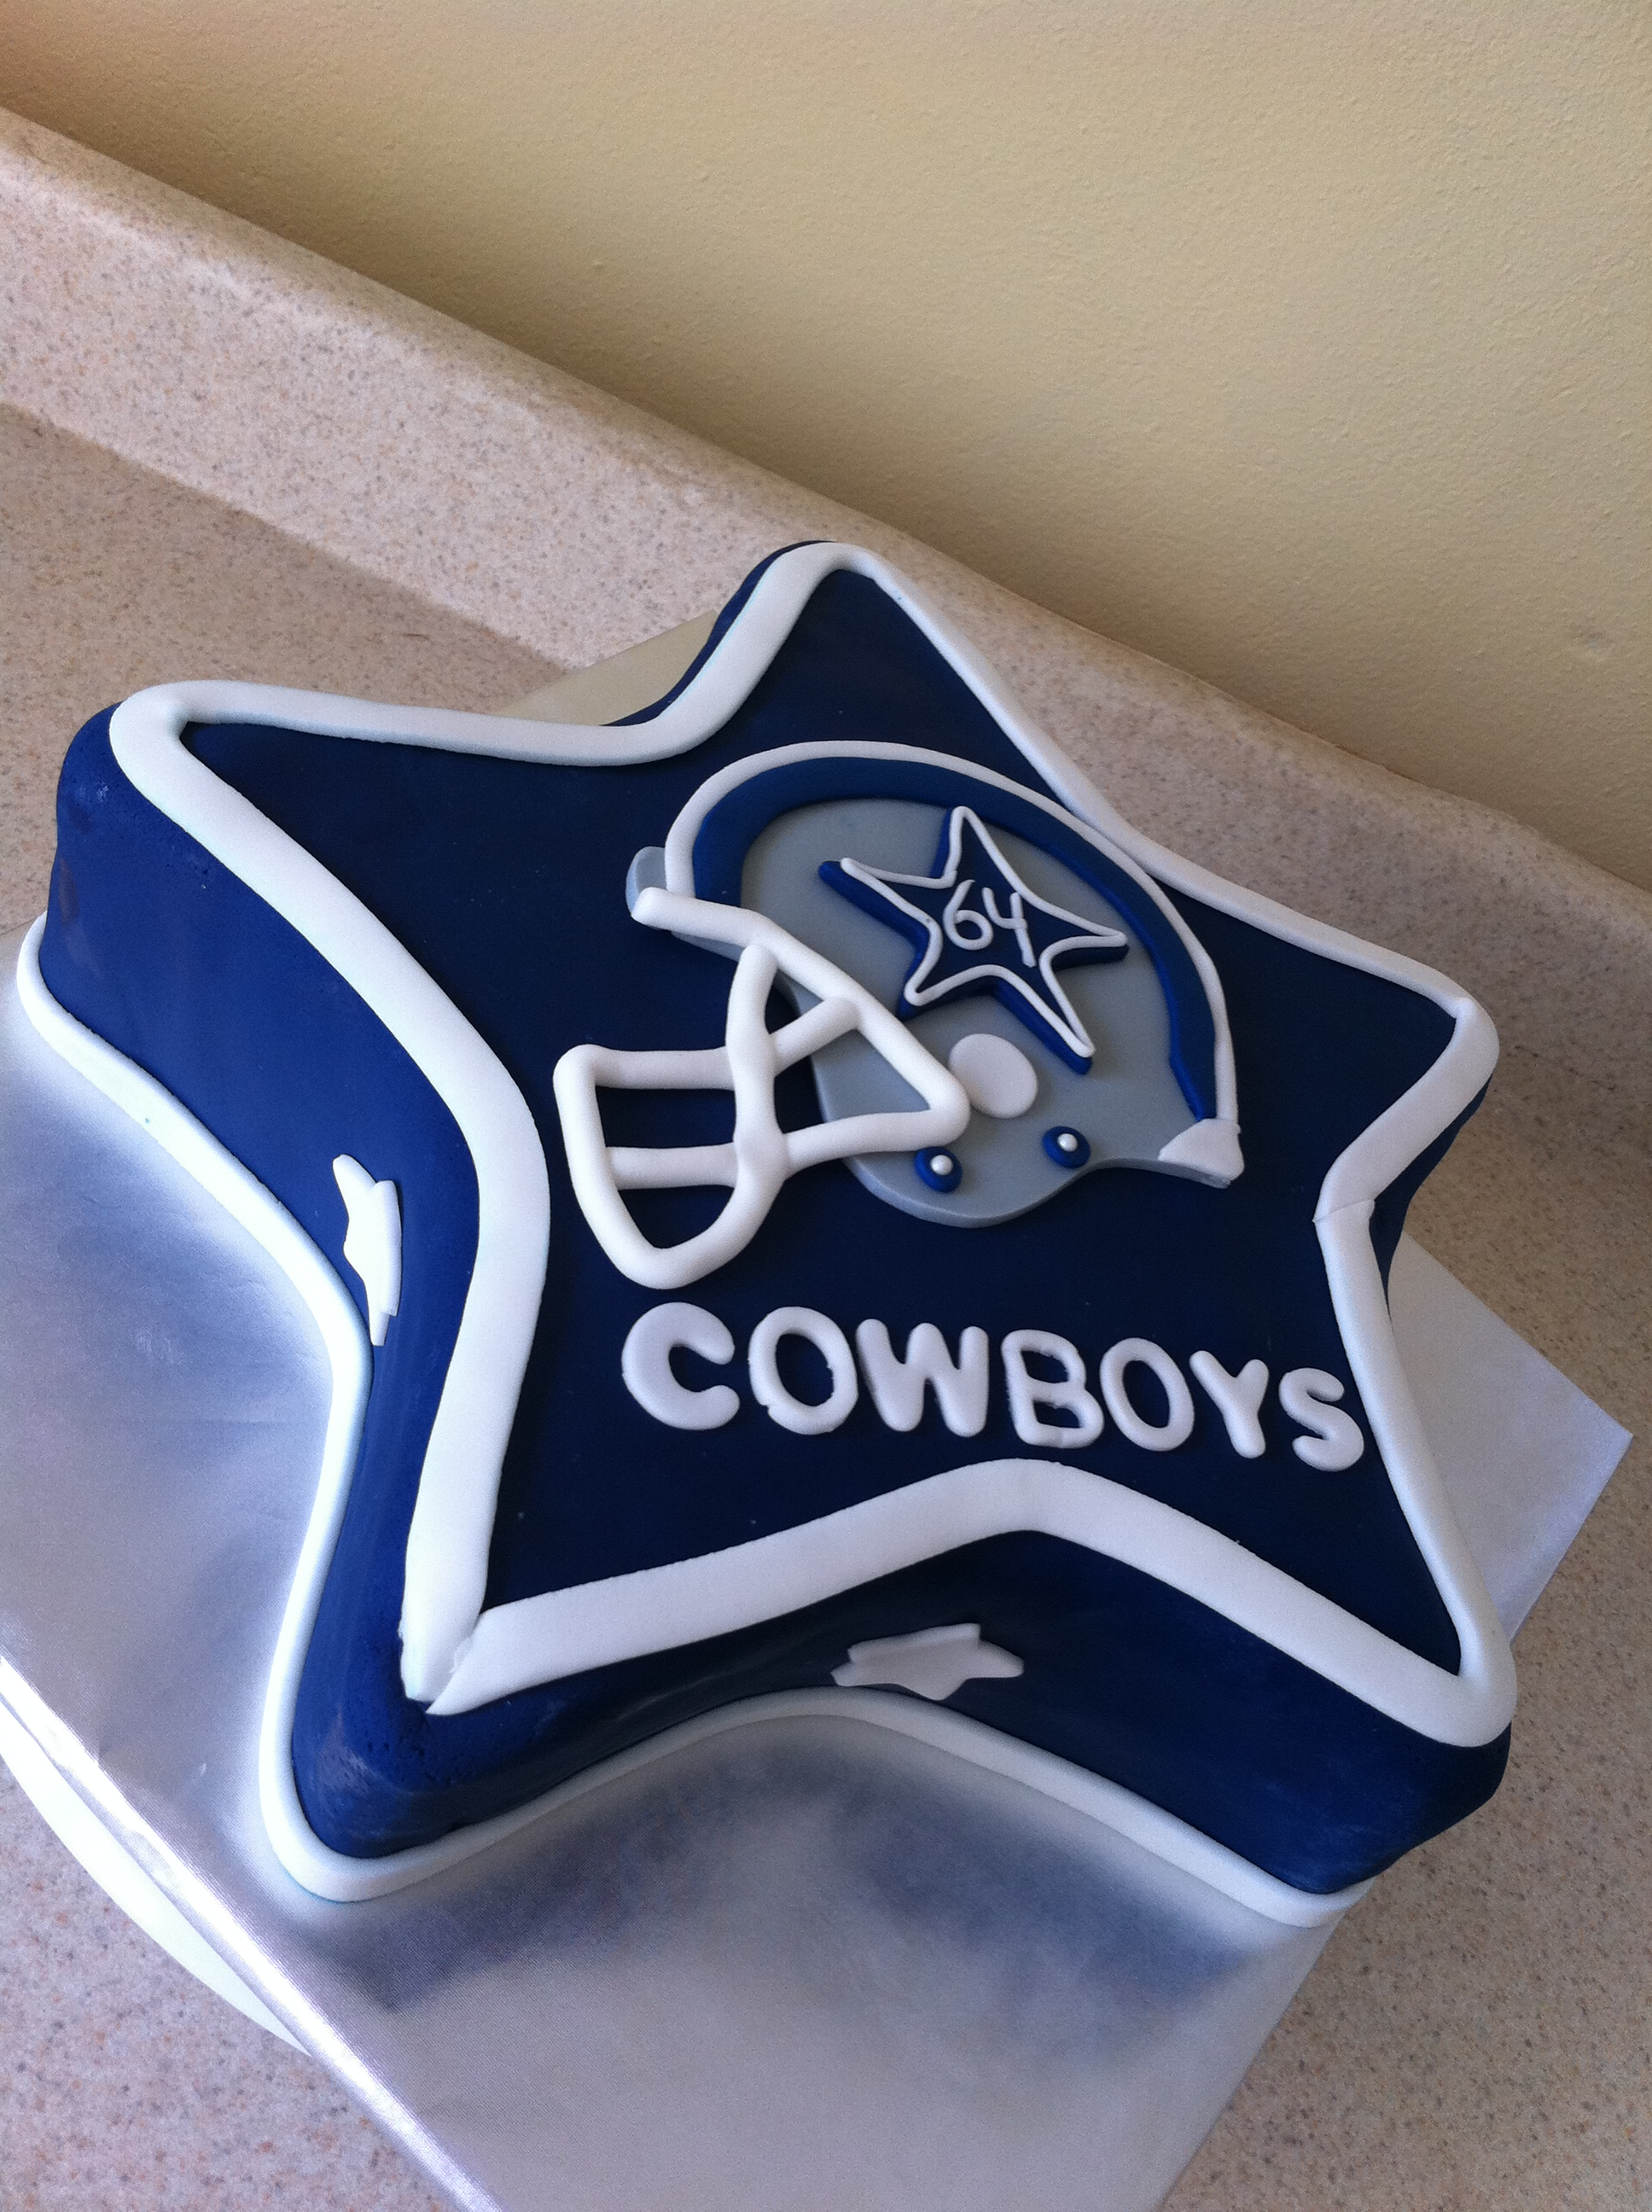 Dallas Cowboys birthday cake Lolos Cakes Sweets